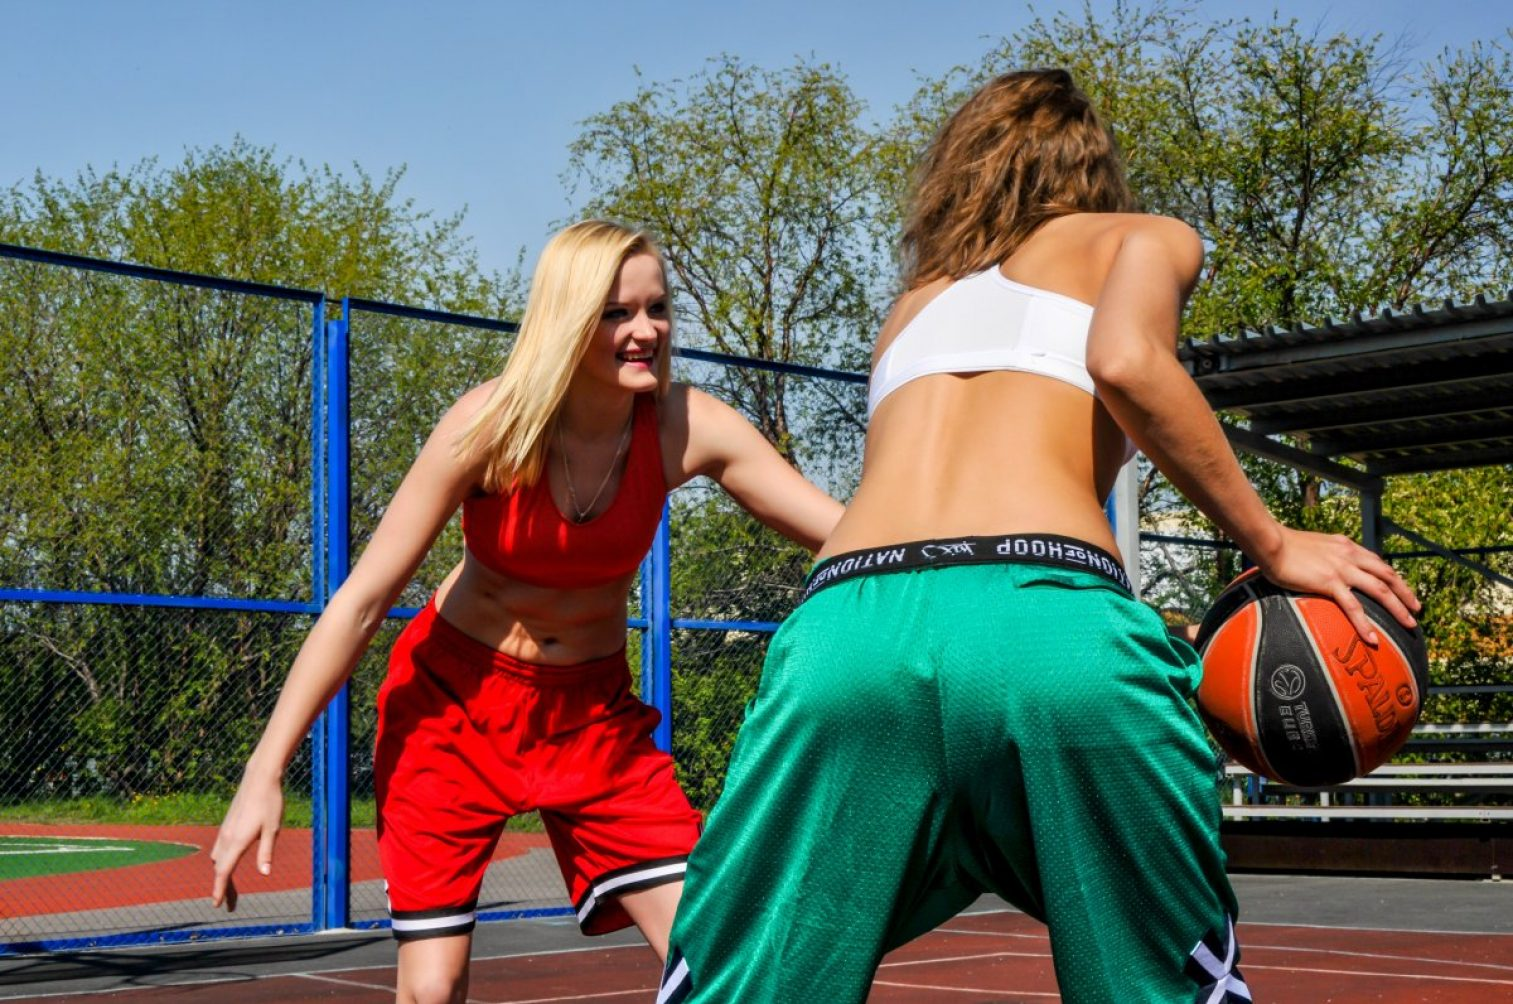 young woman, the park, sports